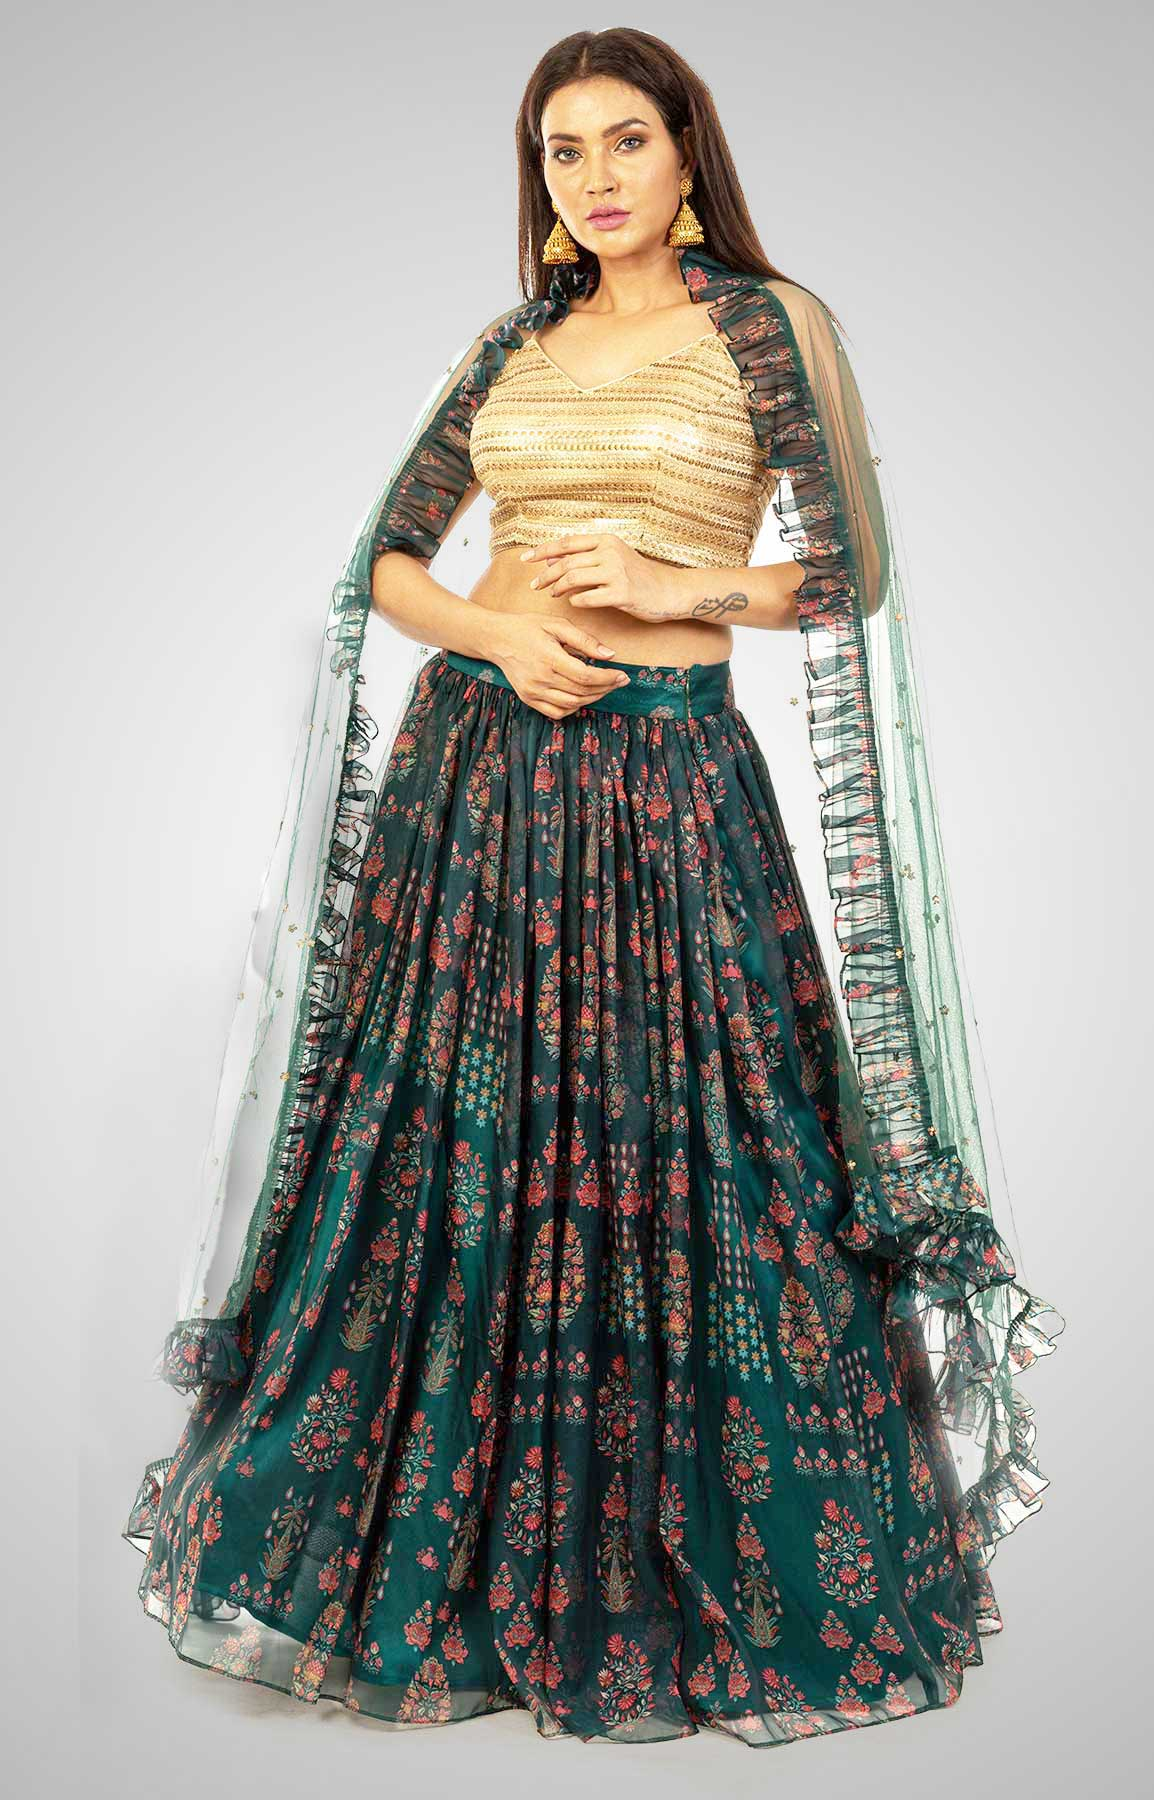 Bottle Green Floral Print Skirt With Sequin Top And Frilled Dupatta – Viraaya By Ushnakmals